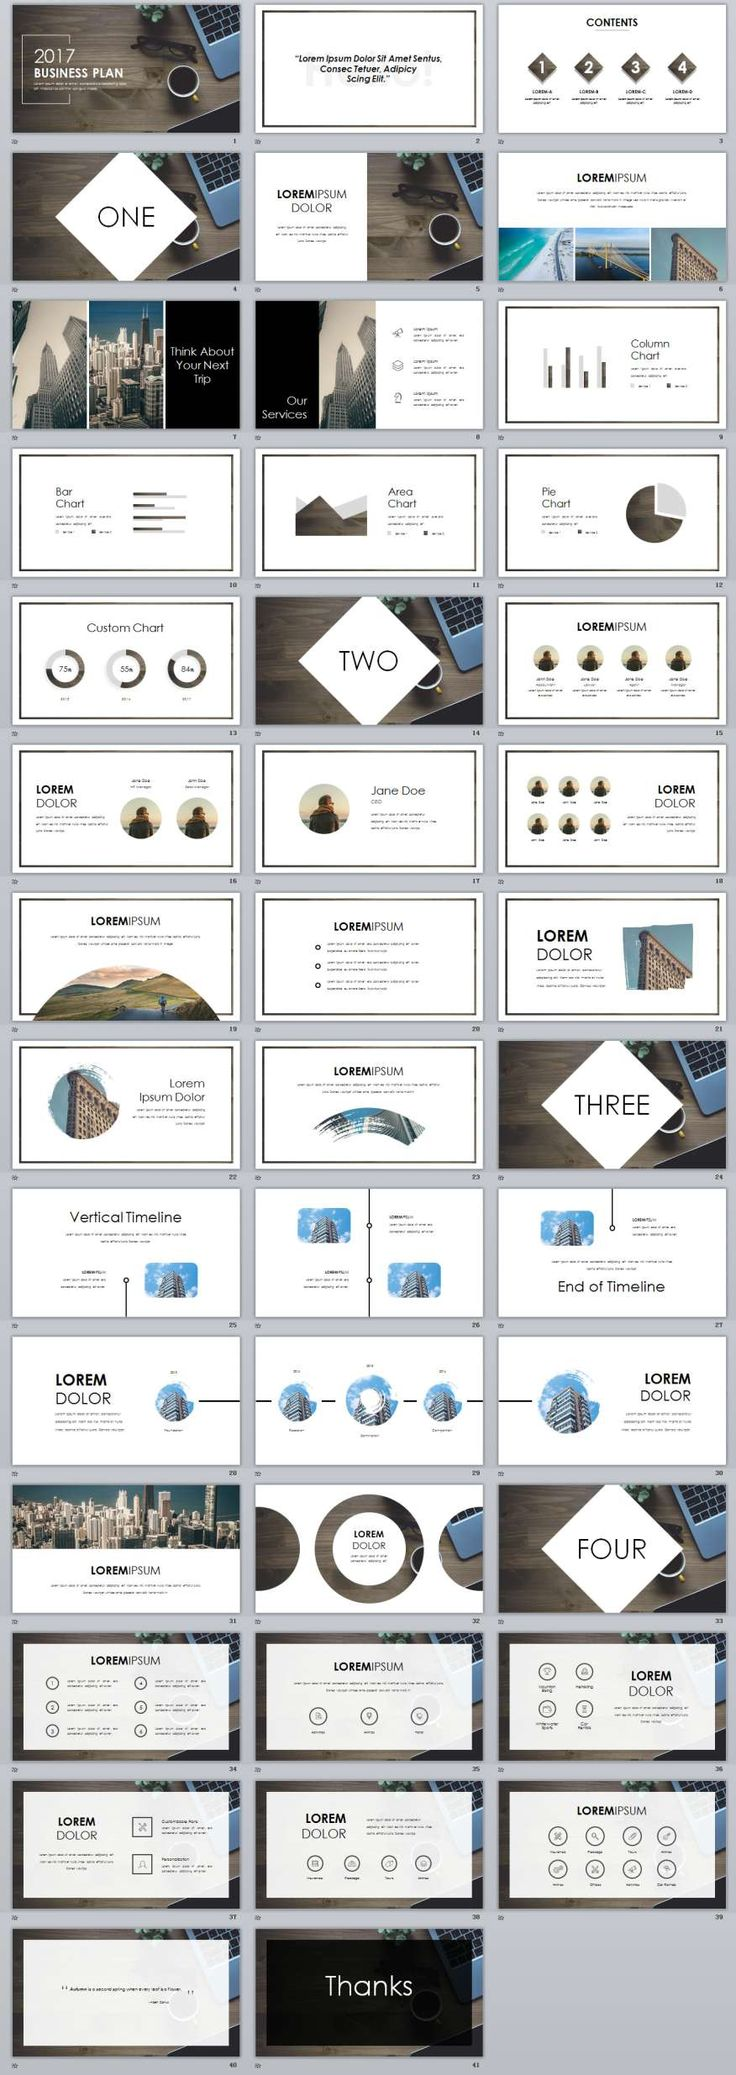 56 best 2018 business powerpoint templates images on pinterest 40 white business plan powerpoint template toneelgroepblik Gallery